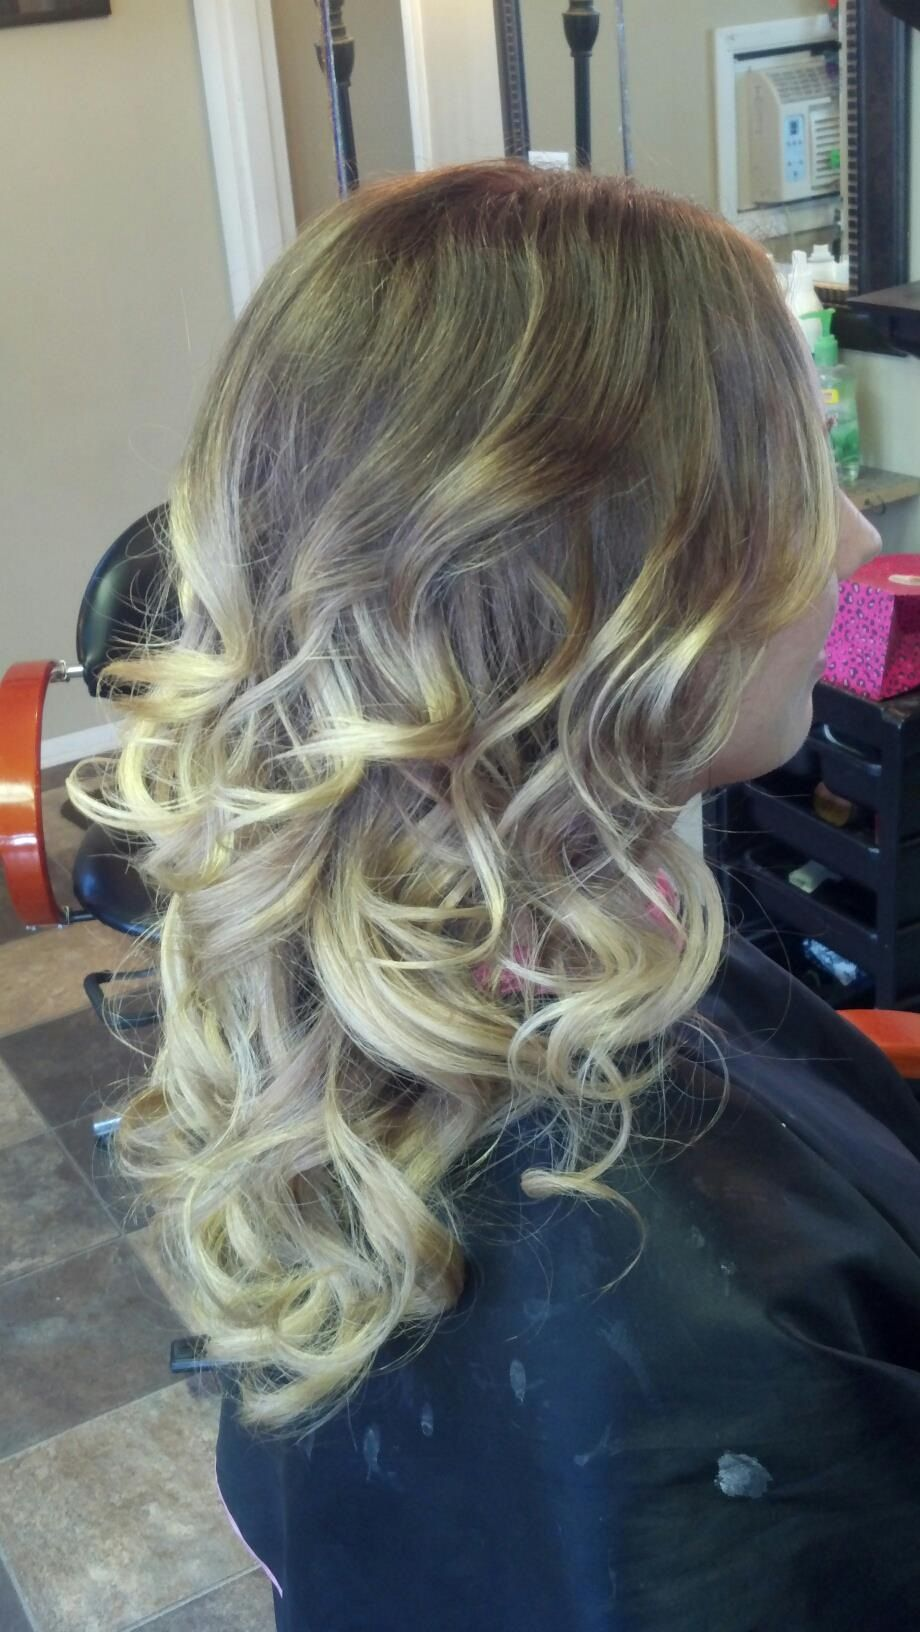 Hair by Carla Carnes owner of Crave Color Salon Hair